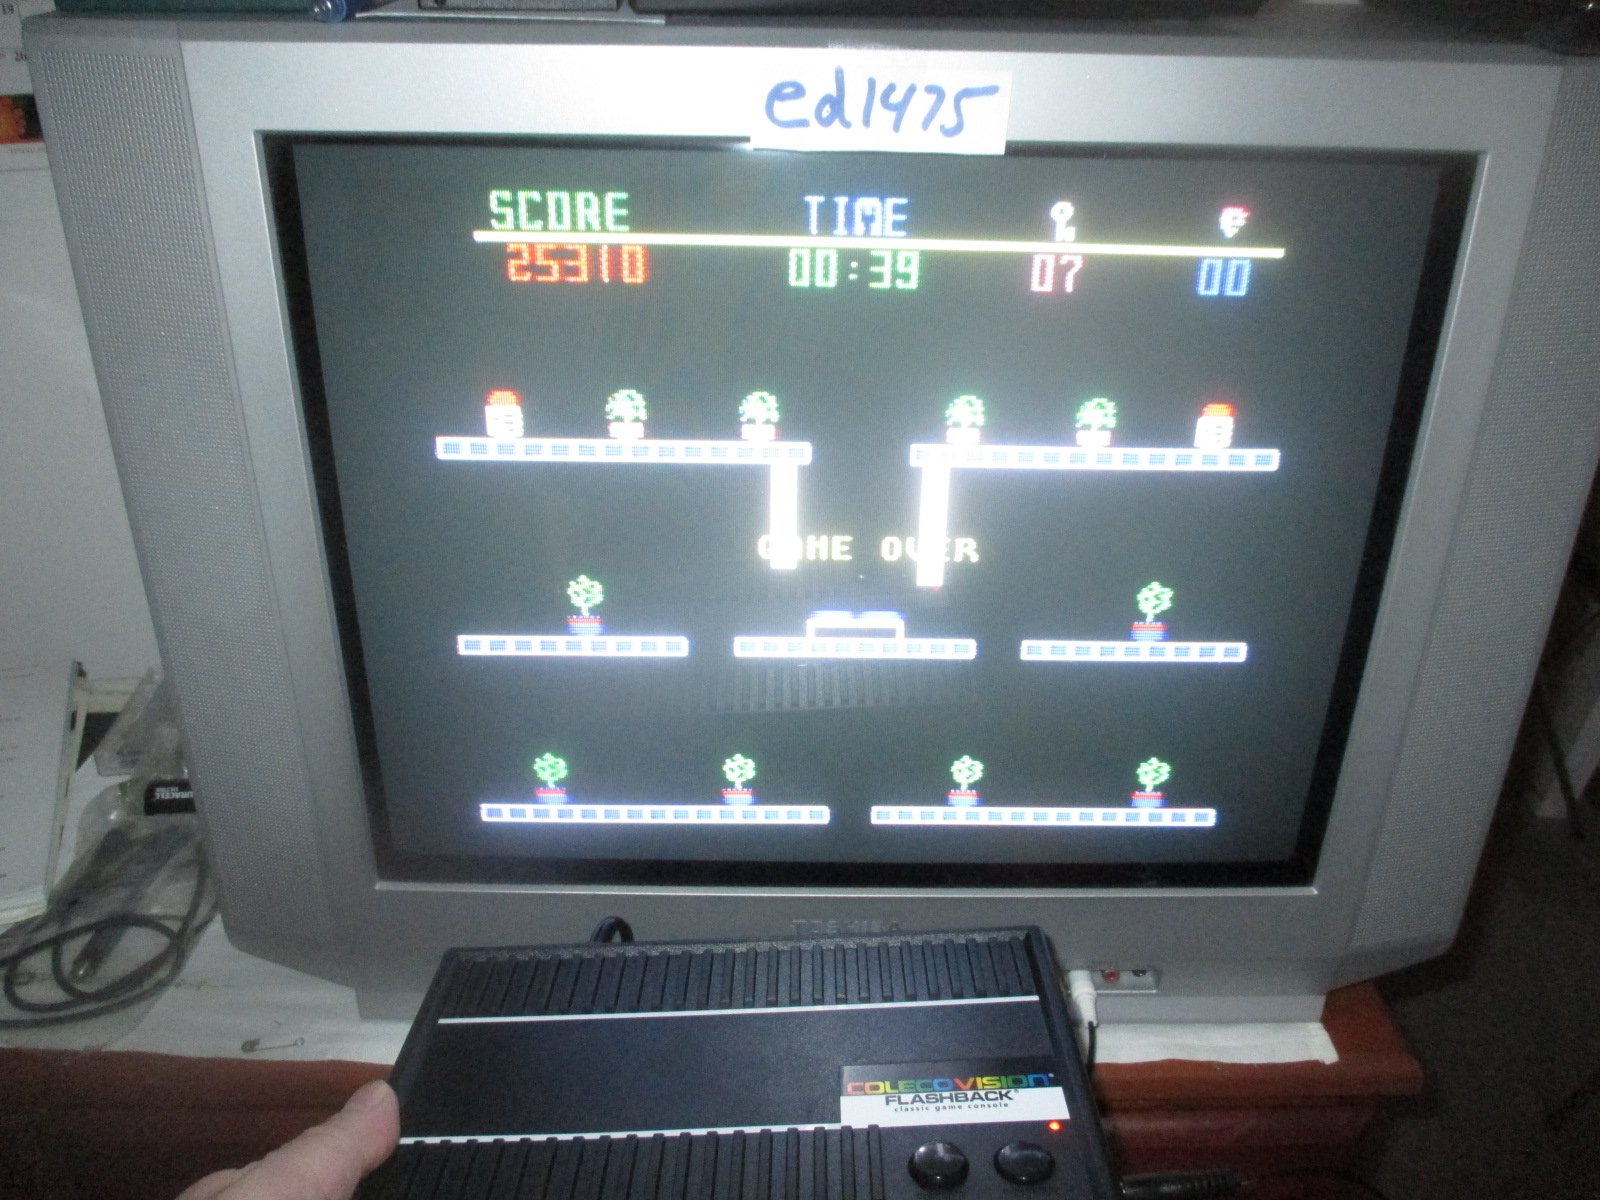 ed1475: The Heist (Colecovision Flashback) 25,310 points on 2014-12-03 18:51:01